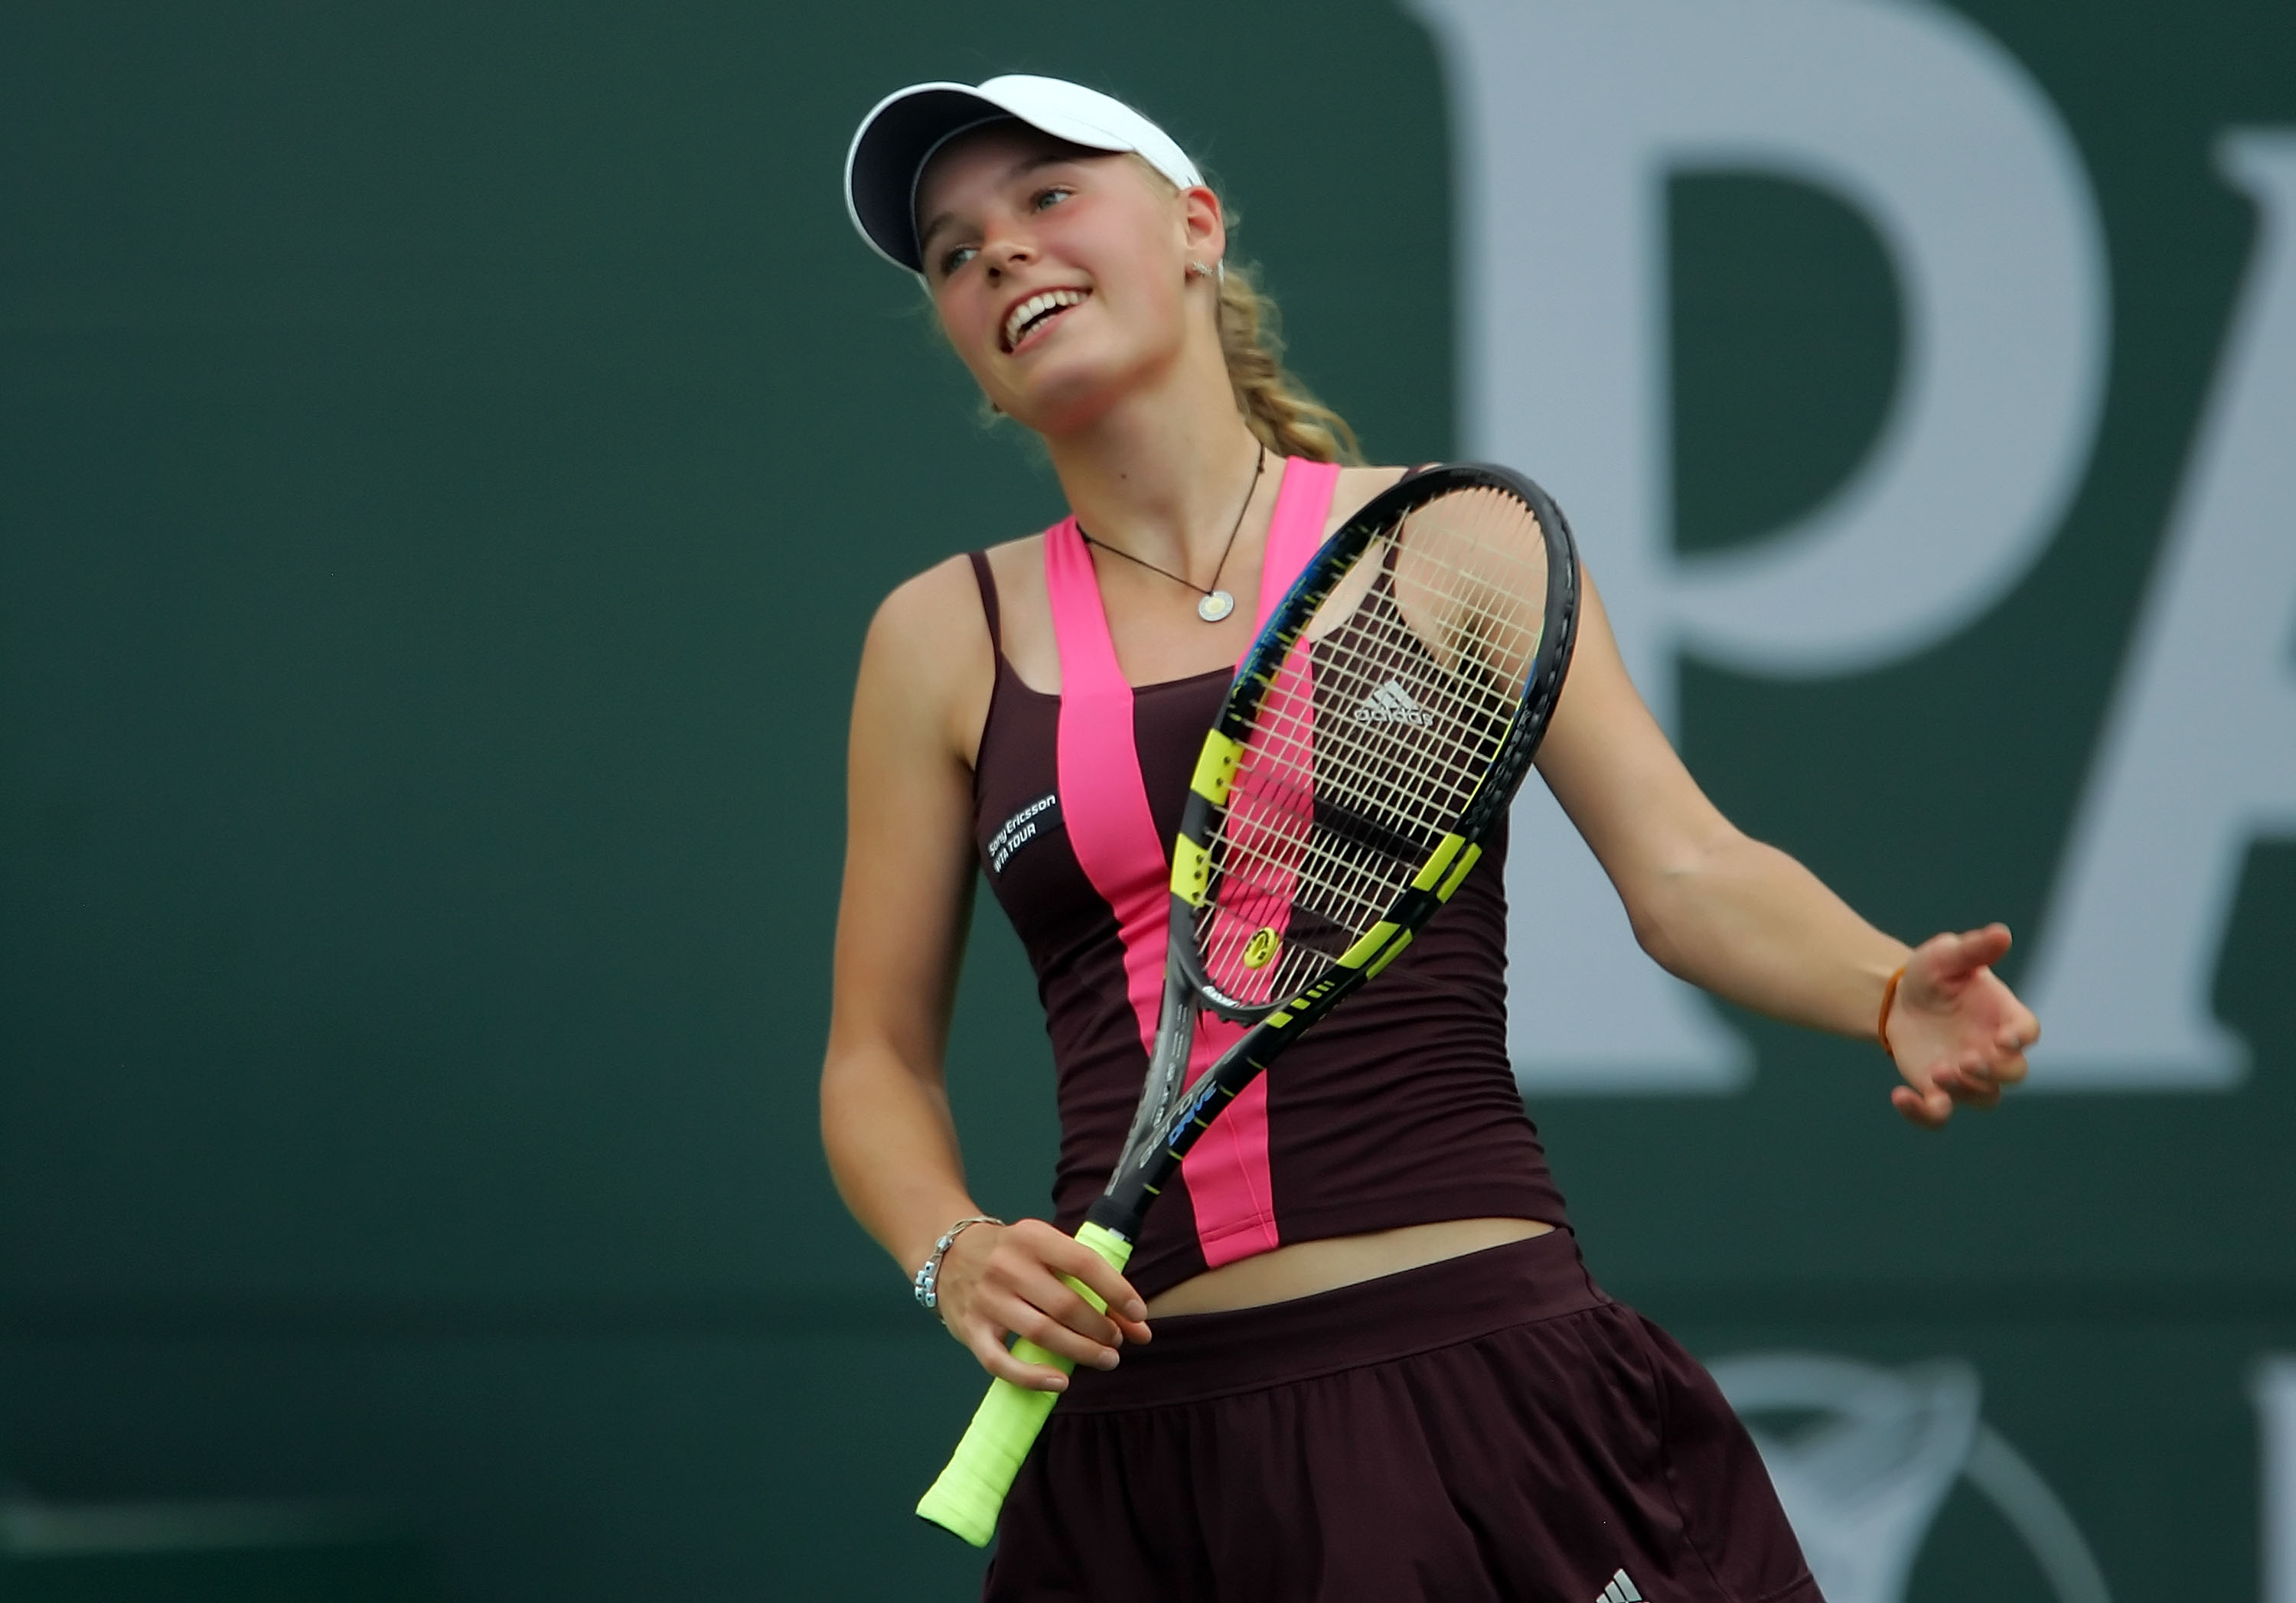 Wozniacki signs with Adidas. And then they did this to her.